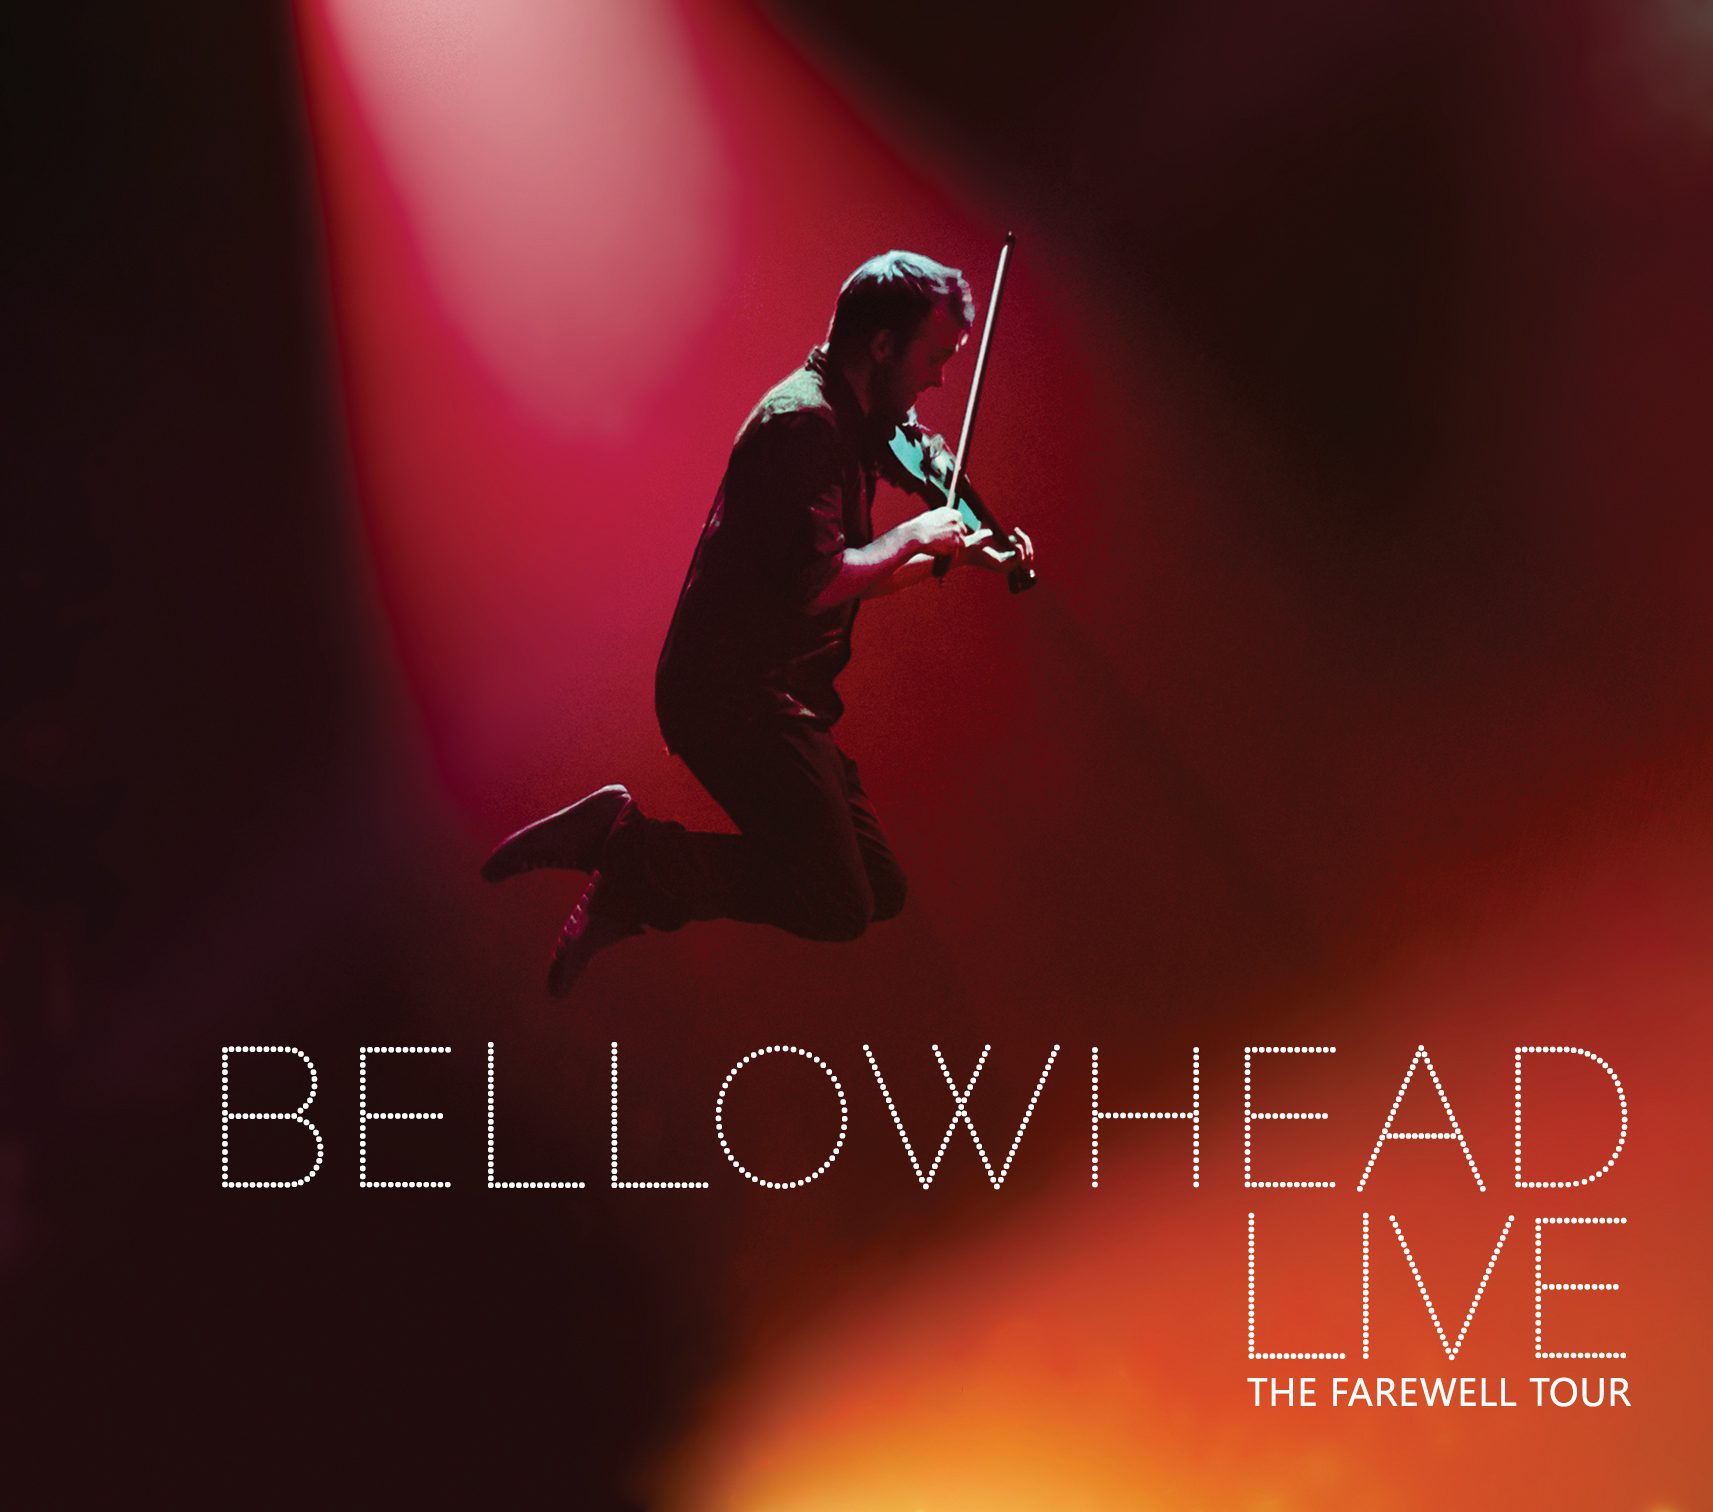 Bellowhead---Live-The-Farewell-Tour-Cover